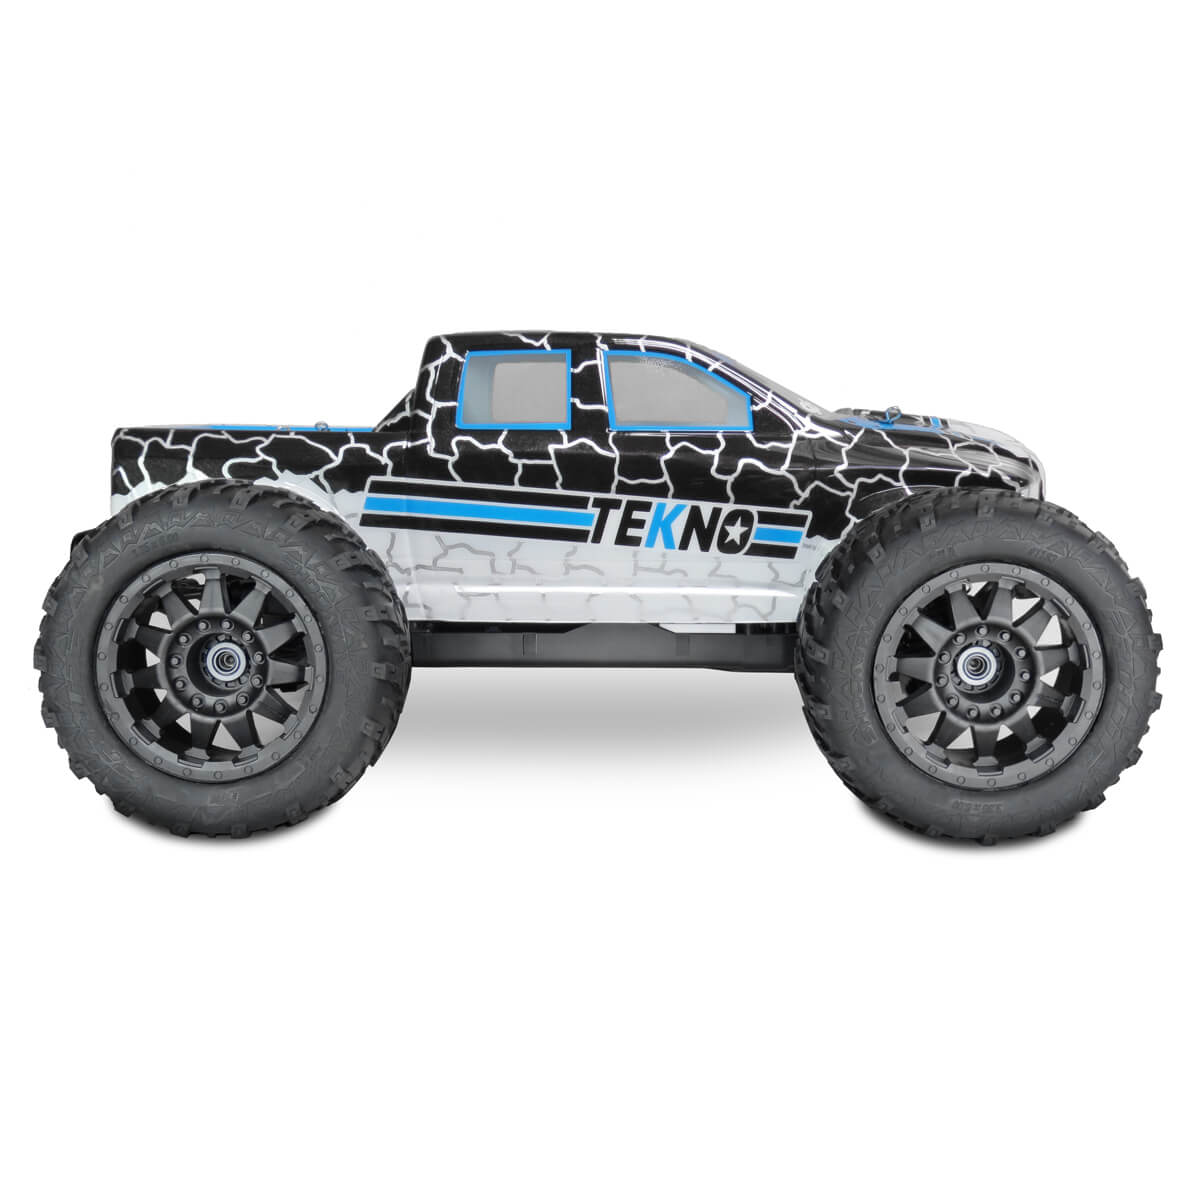 TKR5603 - MT410 1/10th Electric 4x4 Pro Monster Truck Kit